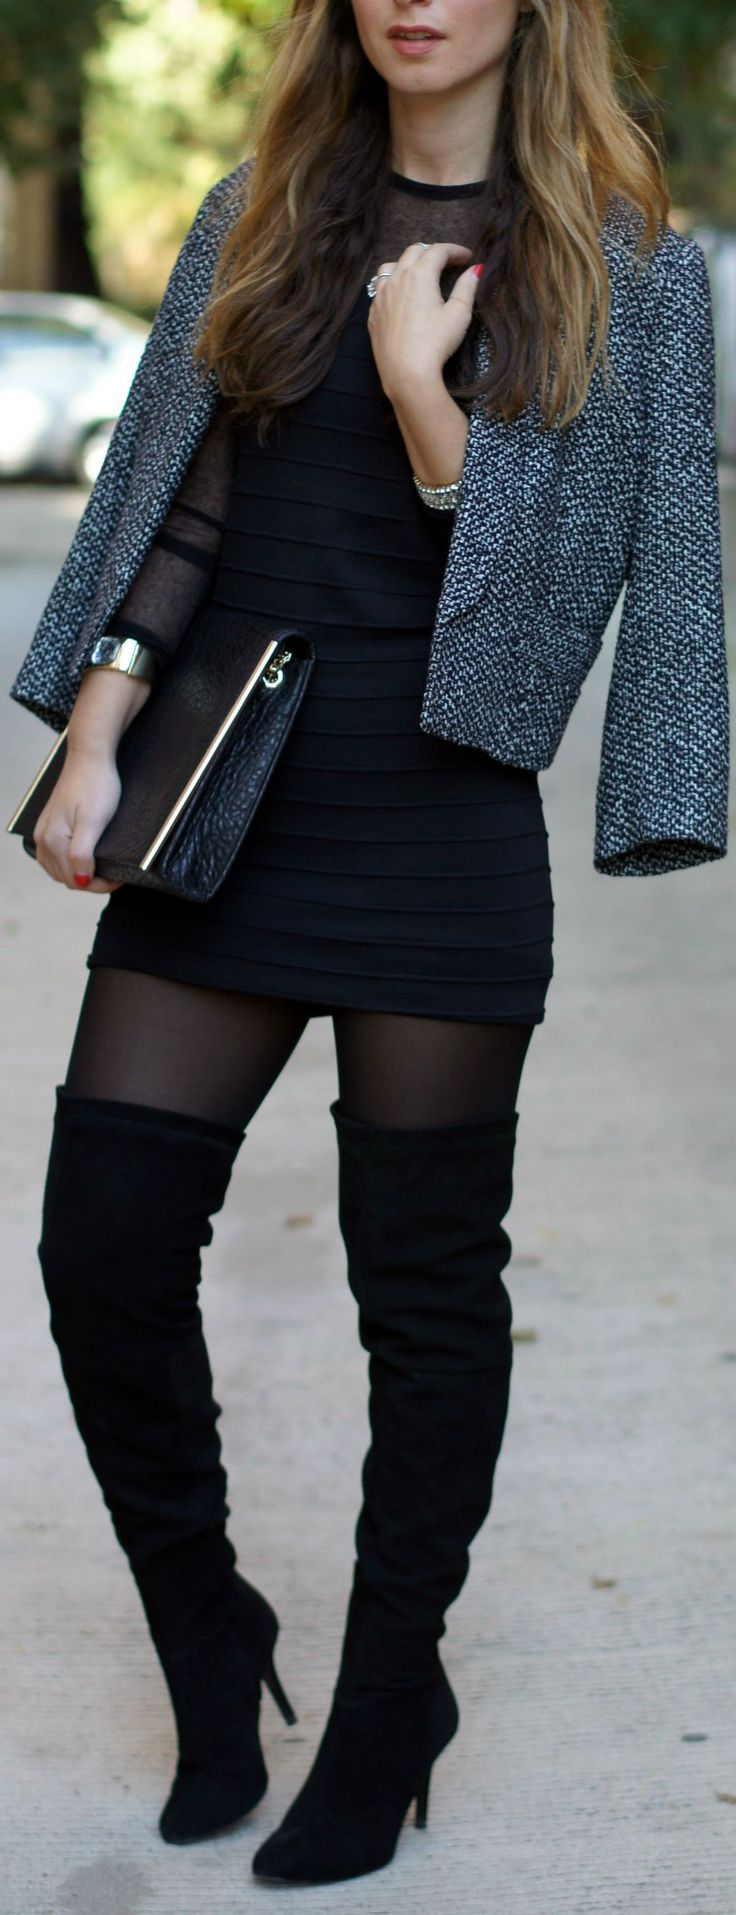 plain outfits with black knee boots